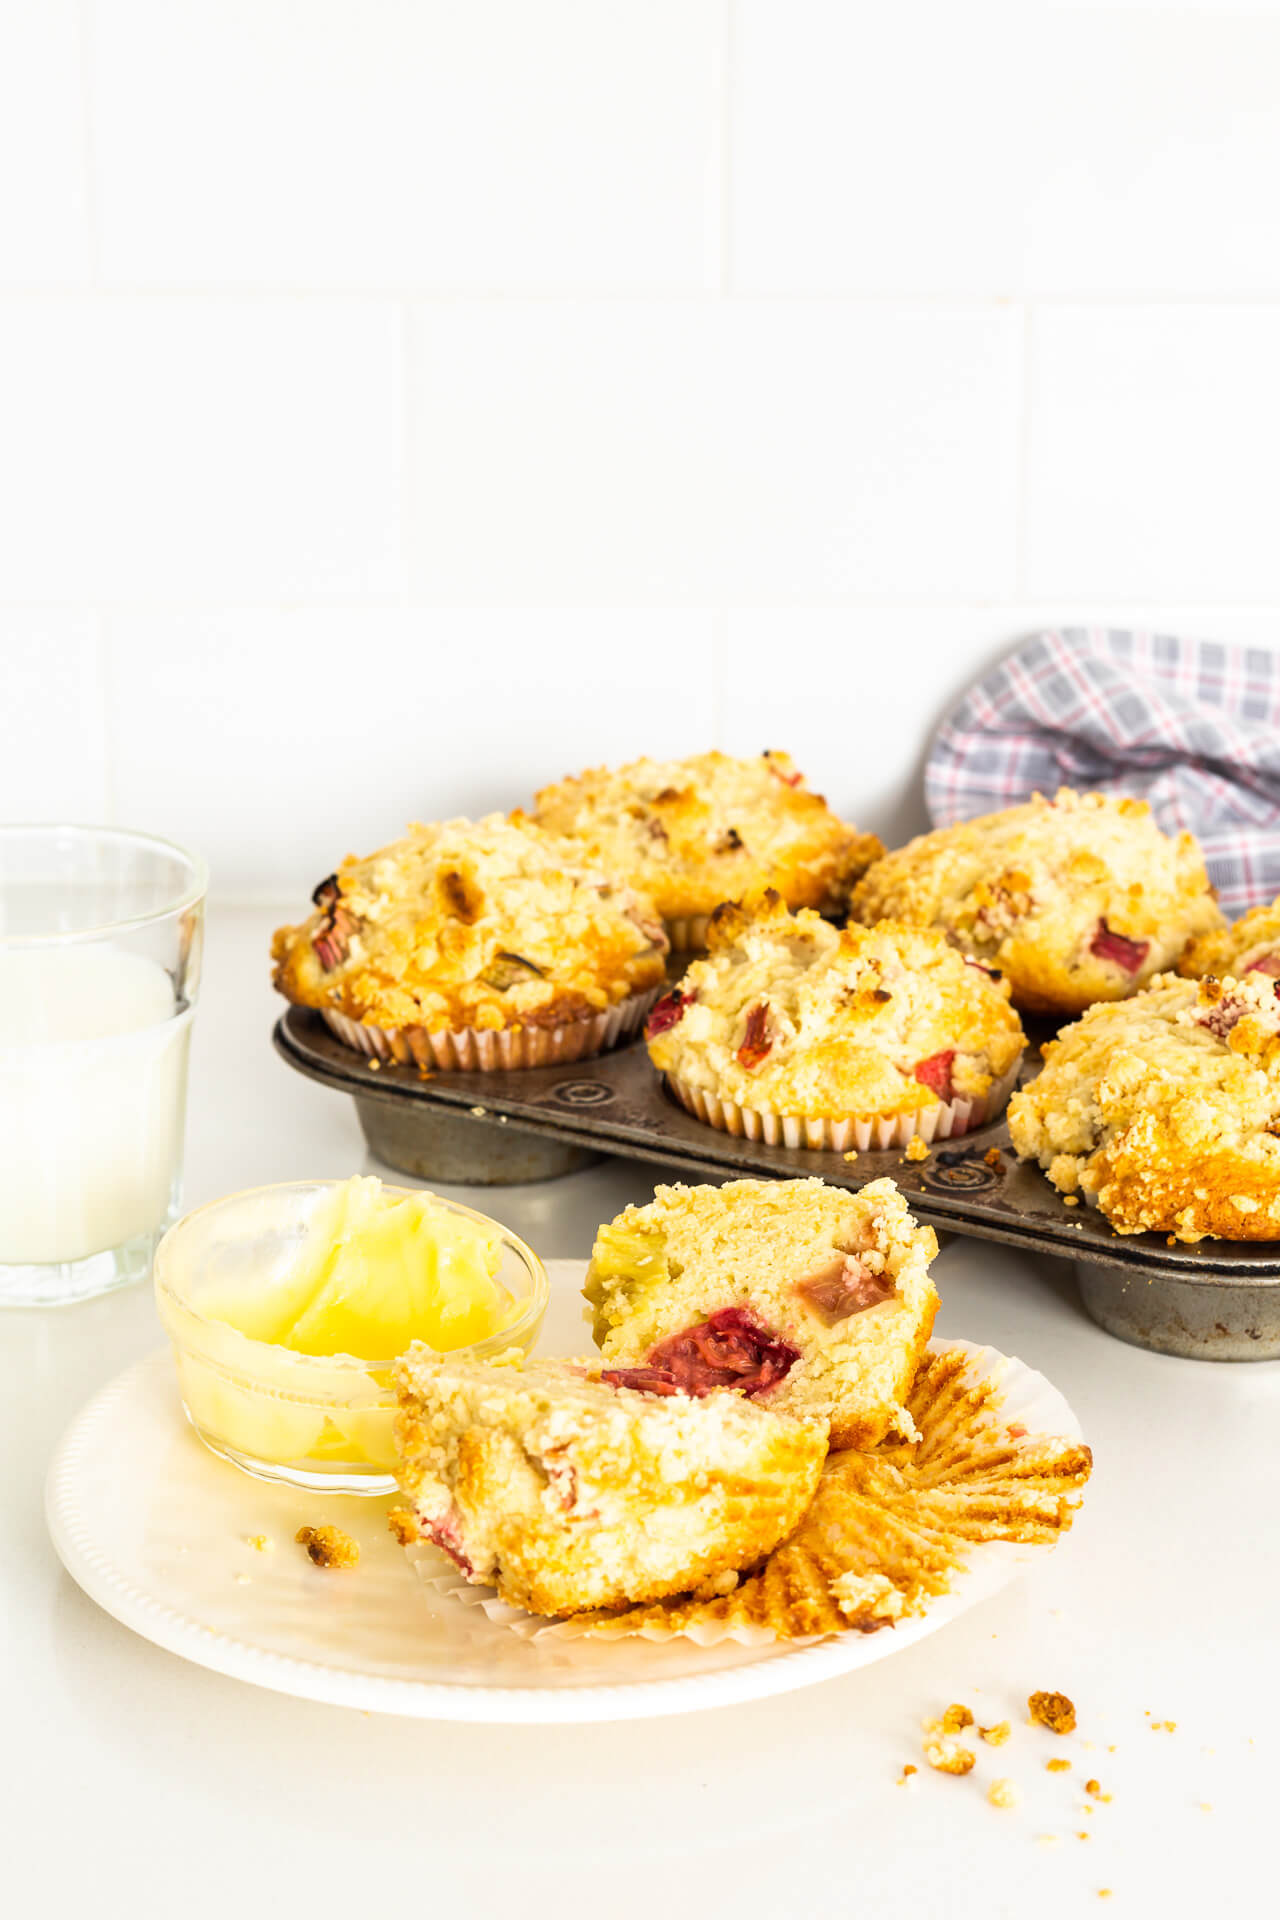 A vintage muffin pan of rhubarb muffins with one on a small plate, cut open to show pink rhurbarb inside, served with a glass of milk